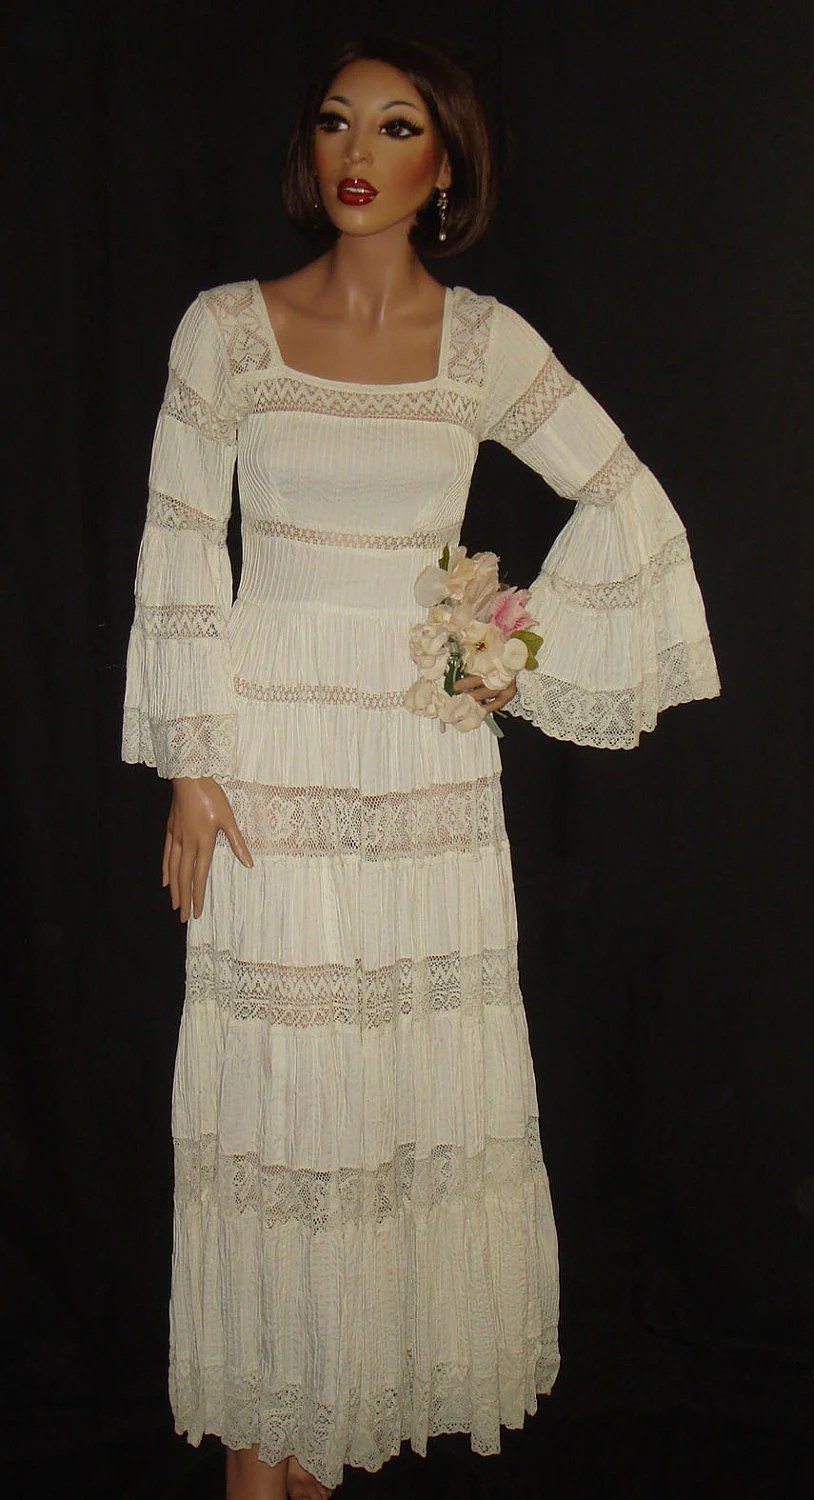 Vintage 1960s White Mexican Wedding Dress with sheer lace and